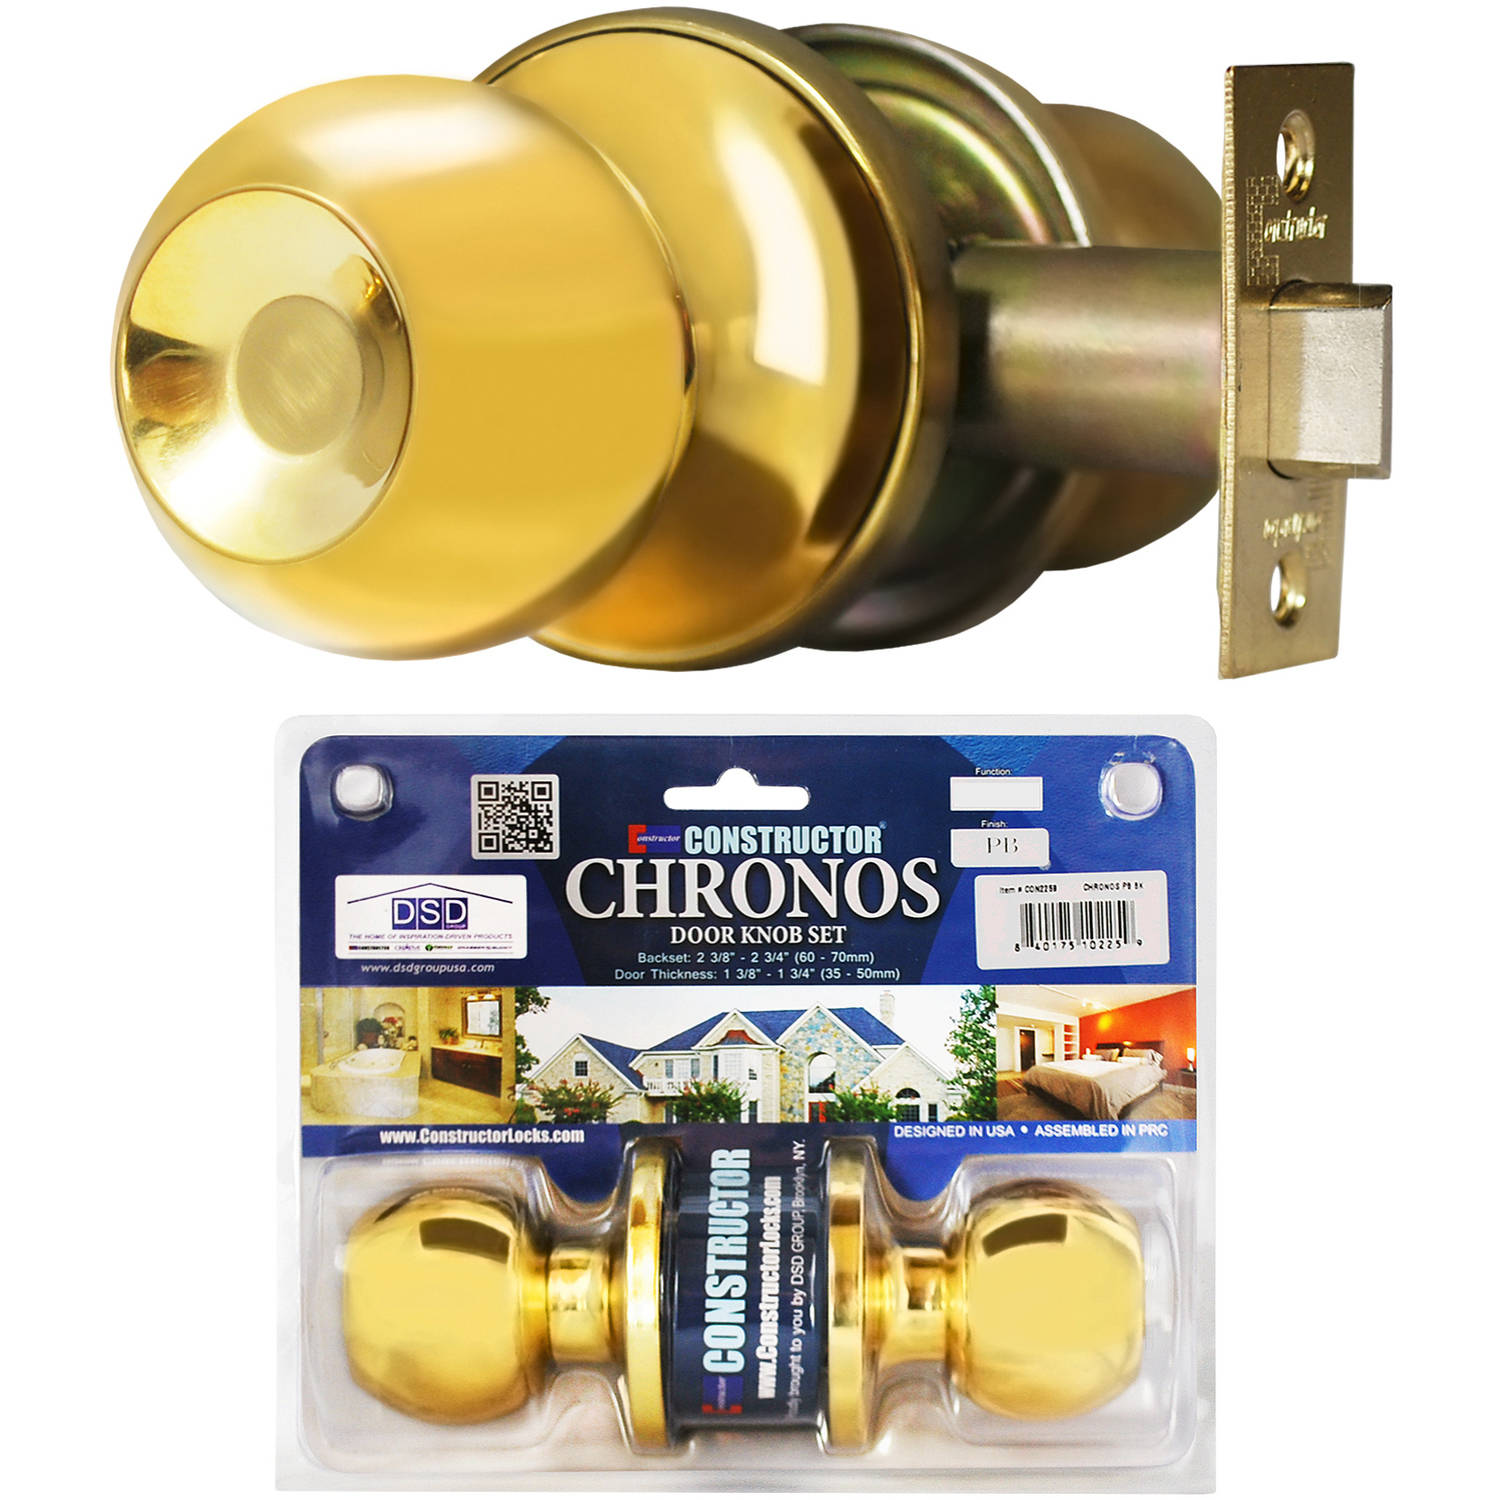 Constructor Chronos Passage Door Knob Handle Lock Set for Hallway and Closet Polished Brass Finish